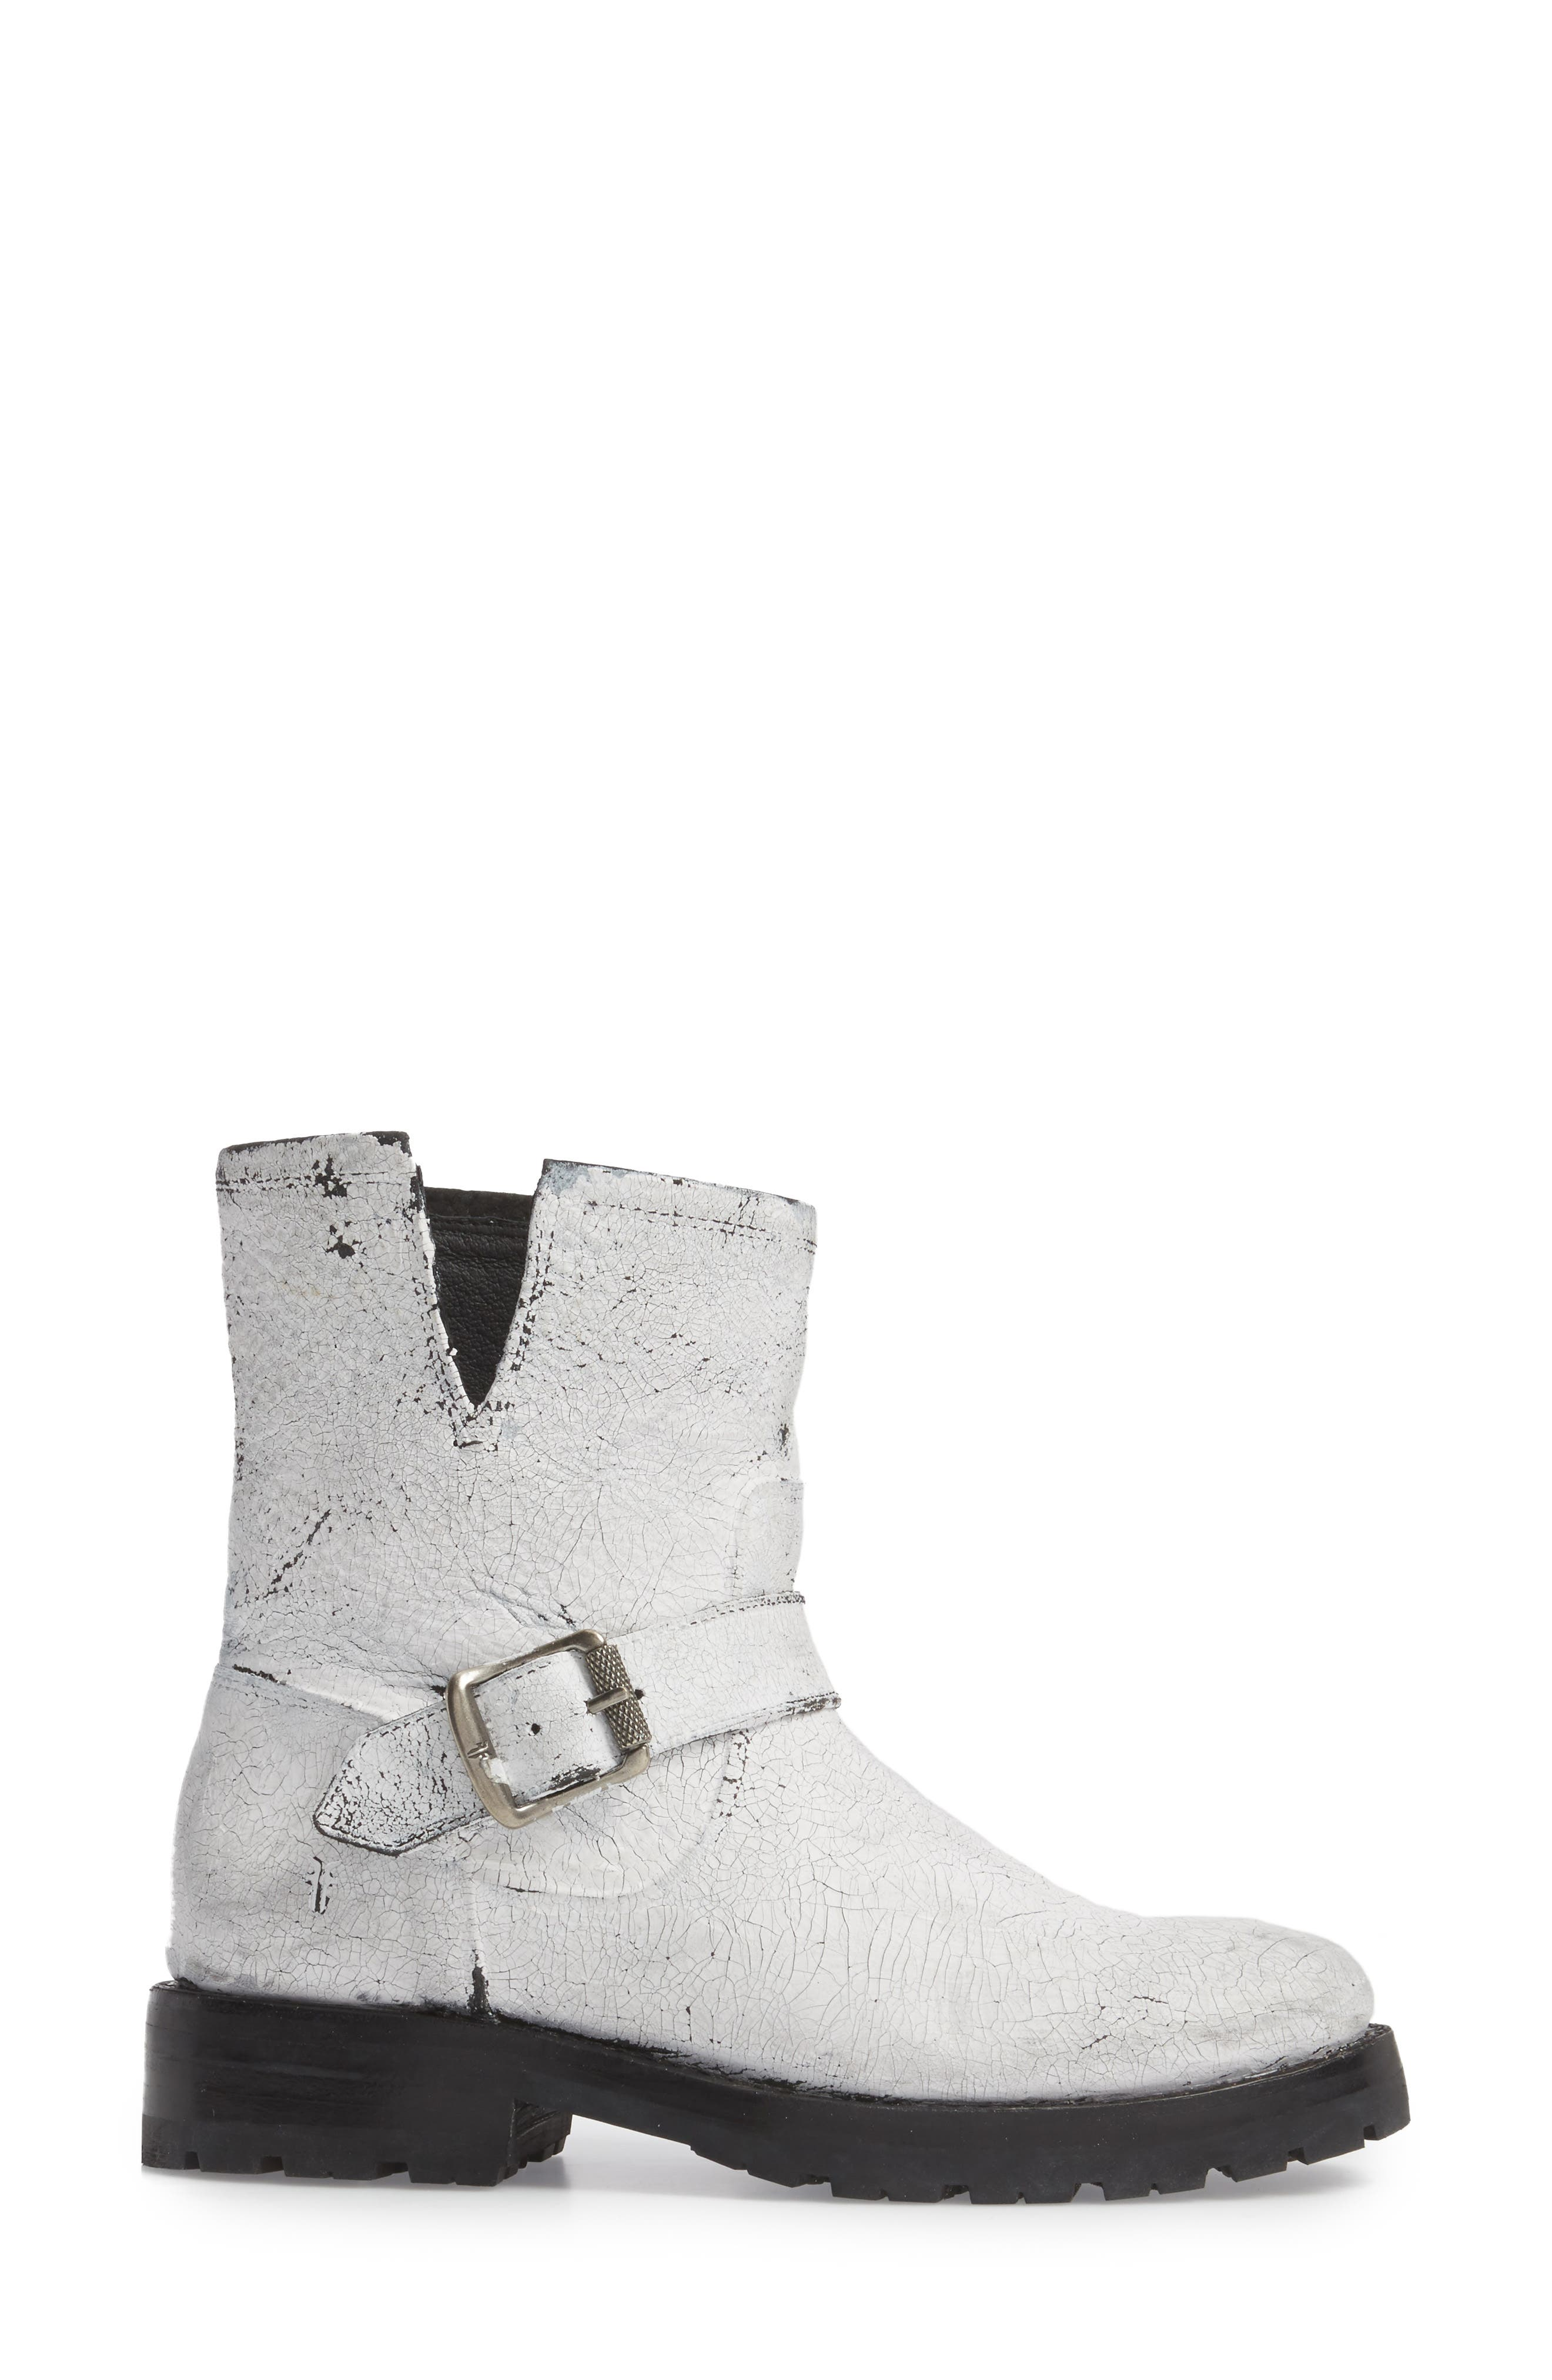 Natalie Engineer Boot,                             Alternate thumbnail 3, color,                             WHITE LEATHER